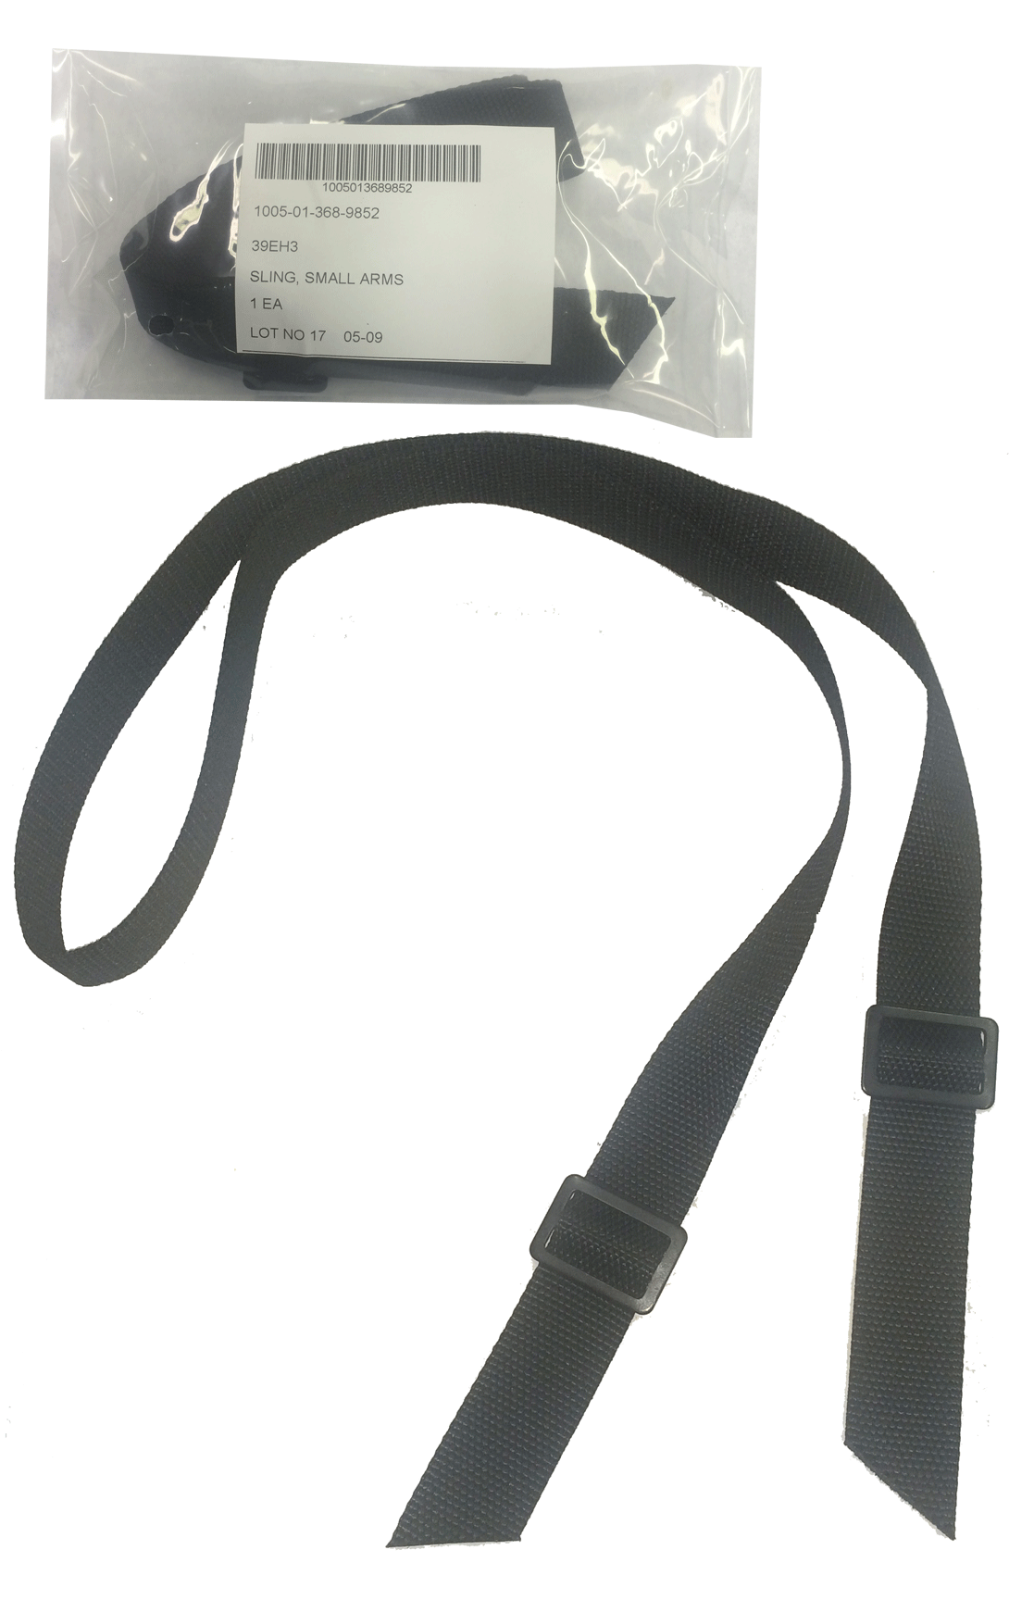 COLT Rifle US Military Issue 2 Point Rifle Sling NSN:1005-01-368-9852 NEW 3